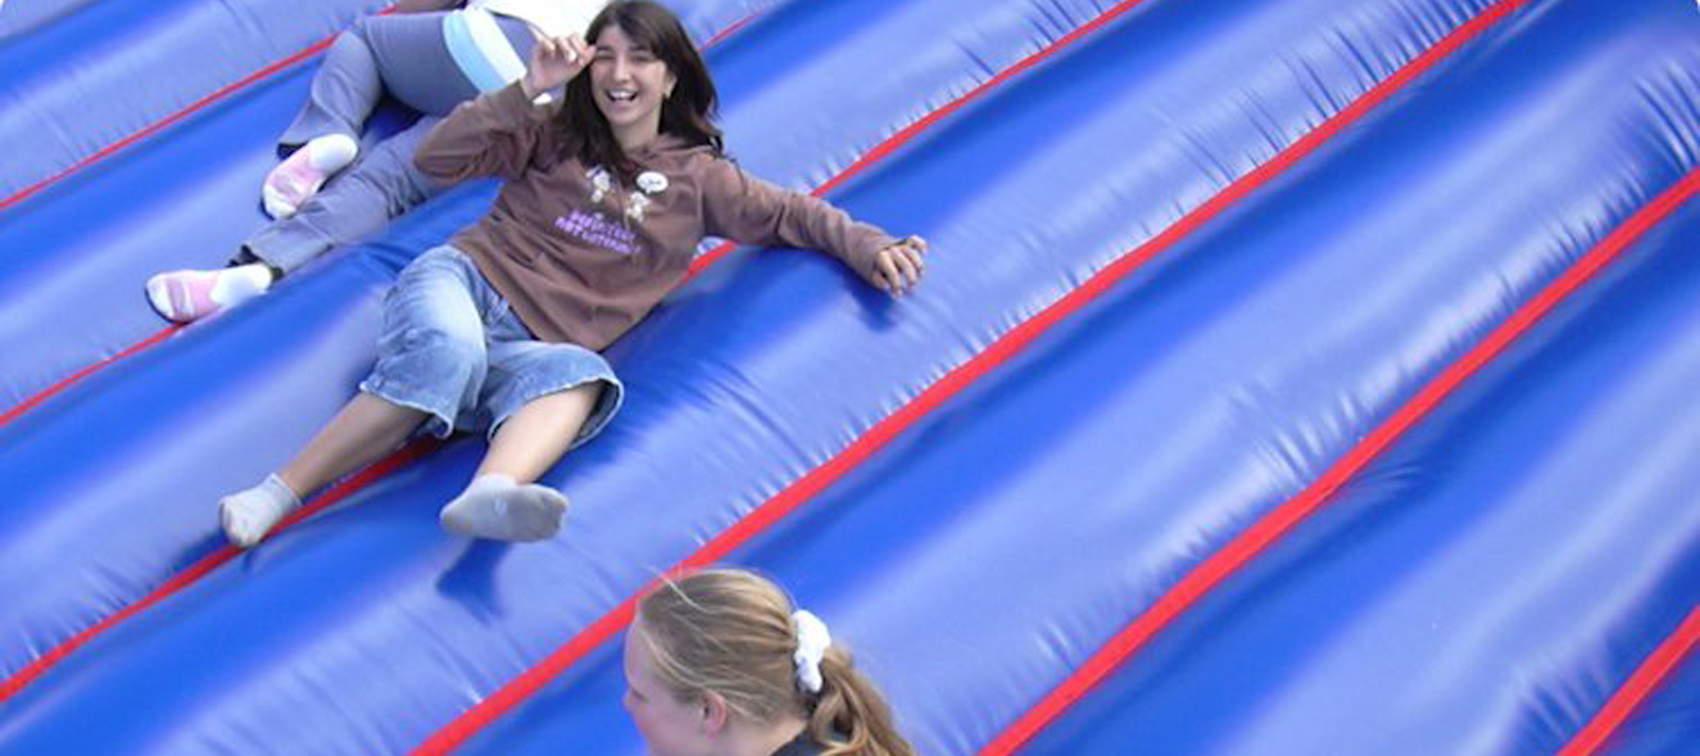 Try Out Are Bouncy Castle Range